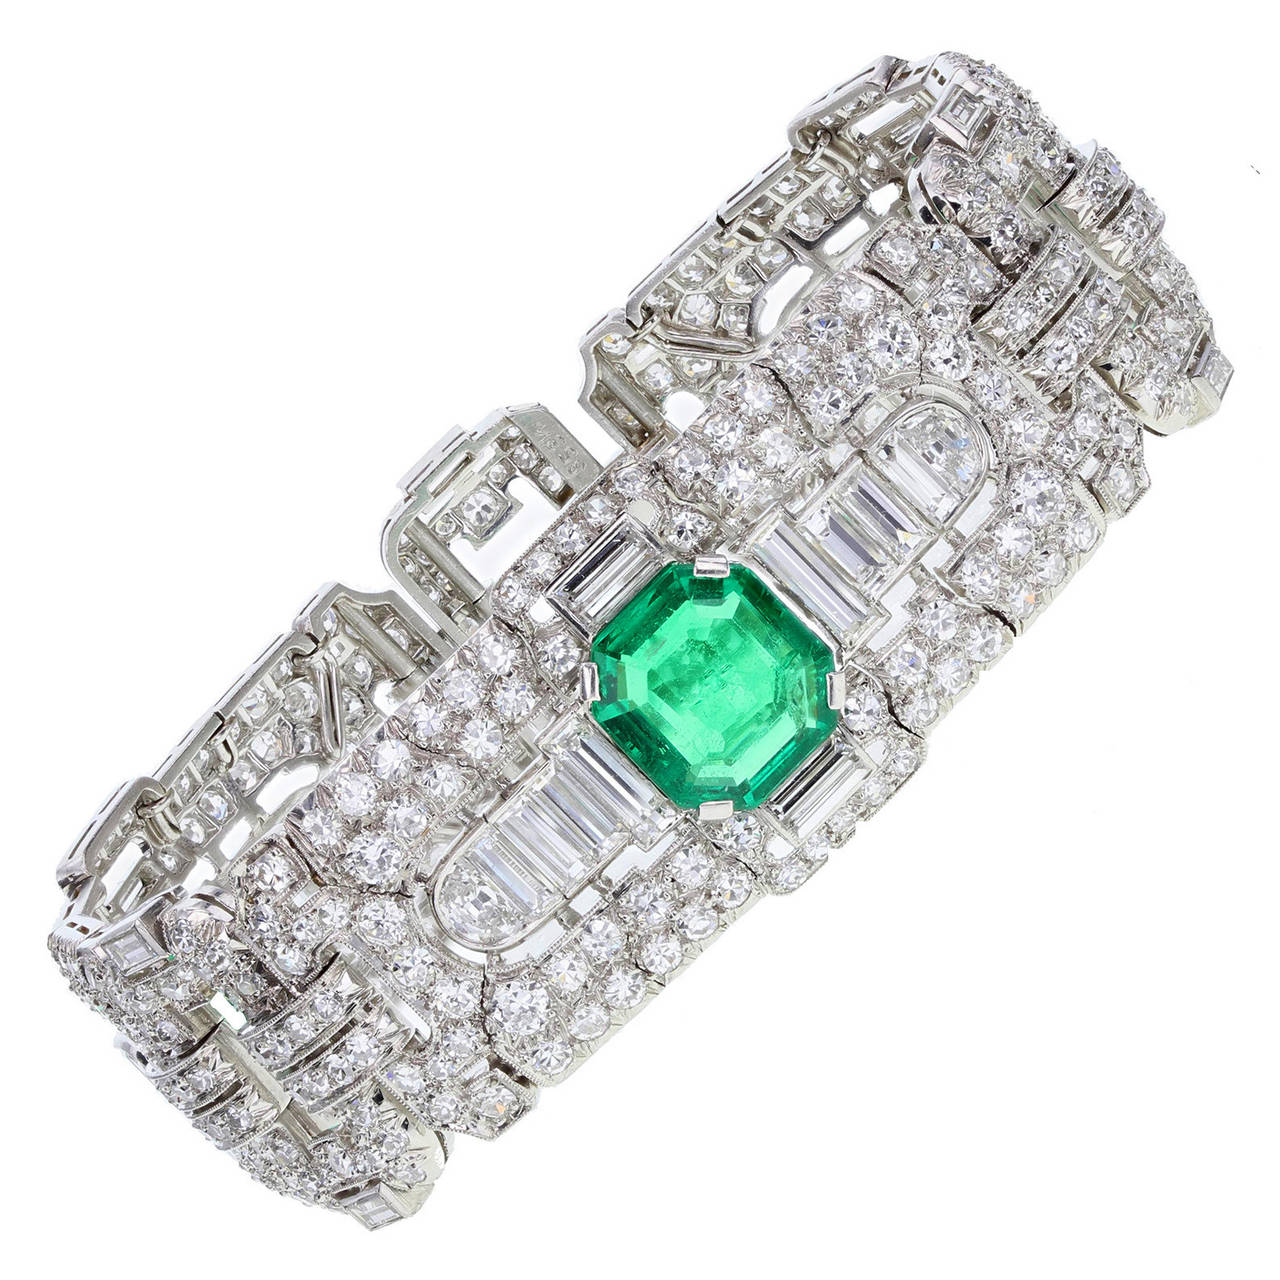 Expertly fashioned from platinum this bracelet comprises of three pierced panels set with baguette and round-cut diamonds in a typical style for the period. Each of the three panels is set with a central very fine quality Colombian emerald. The